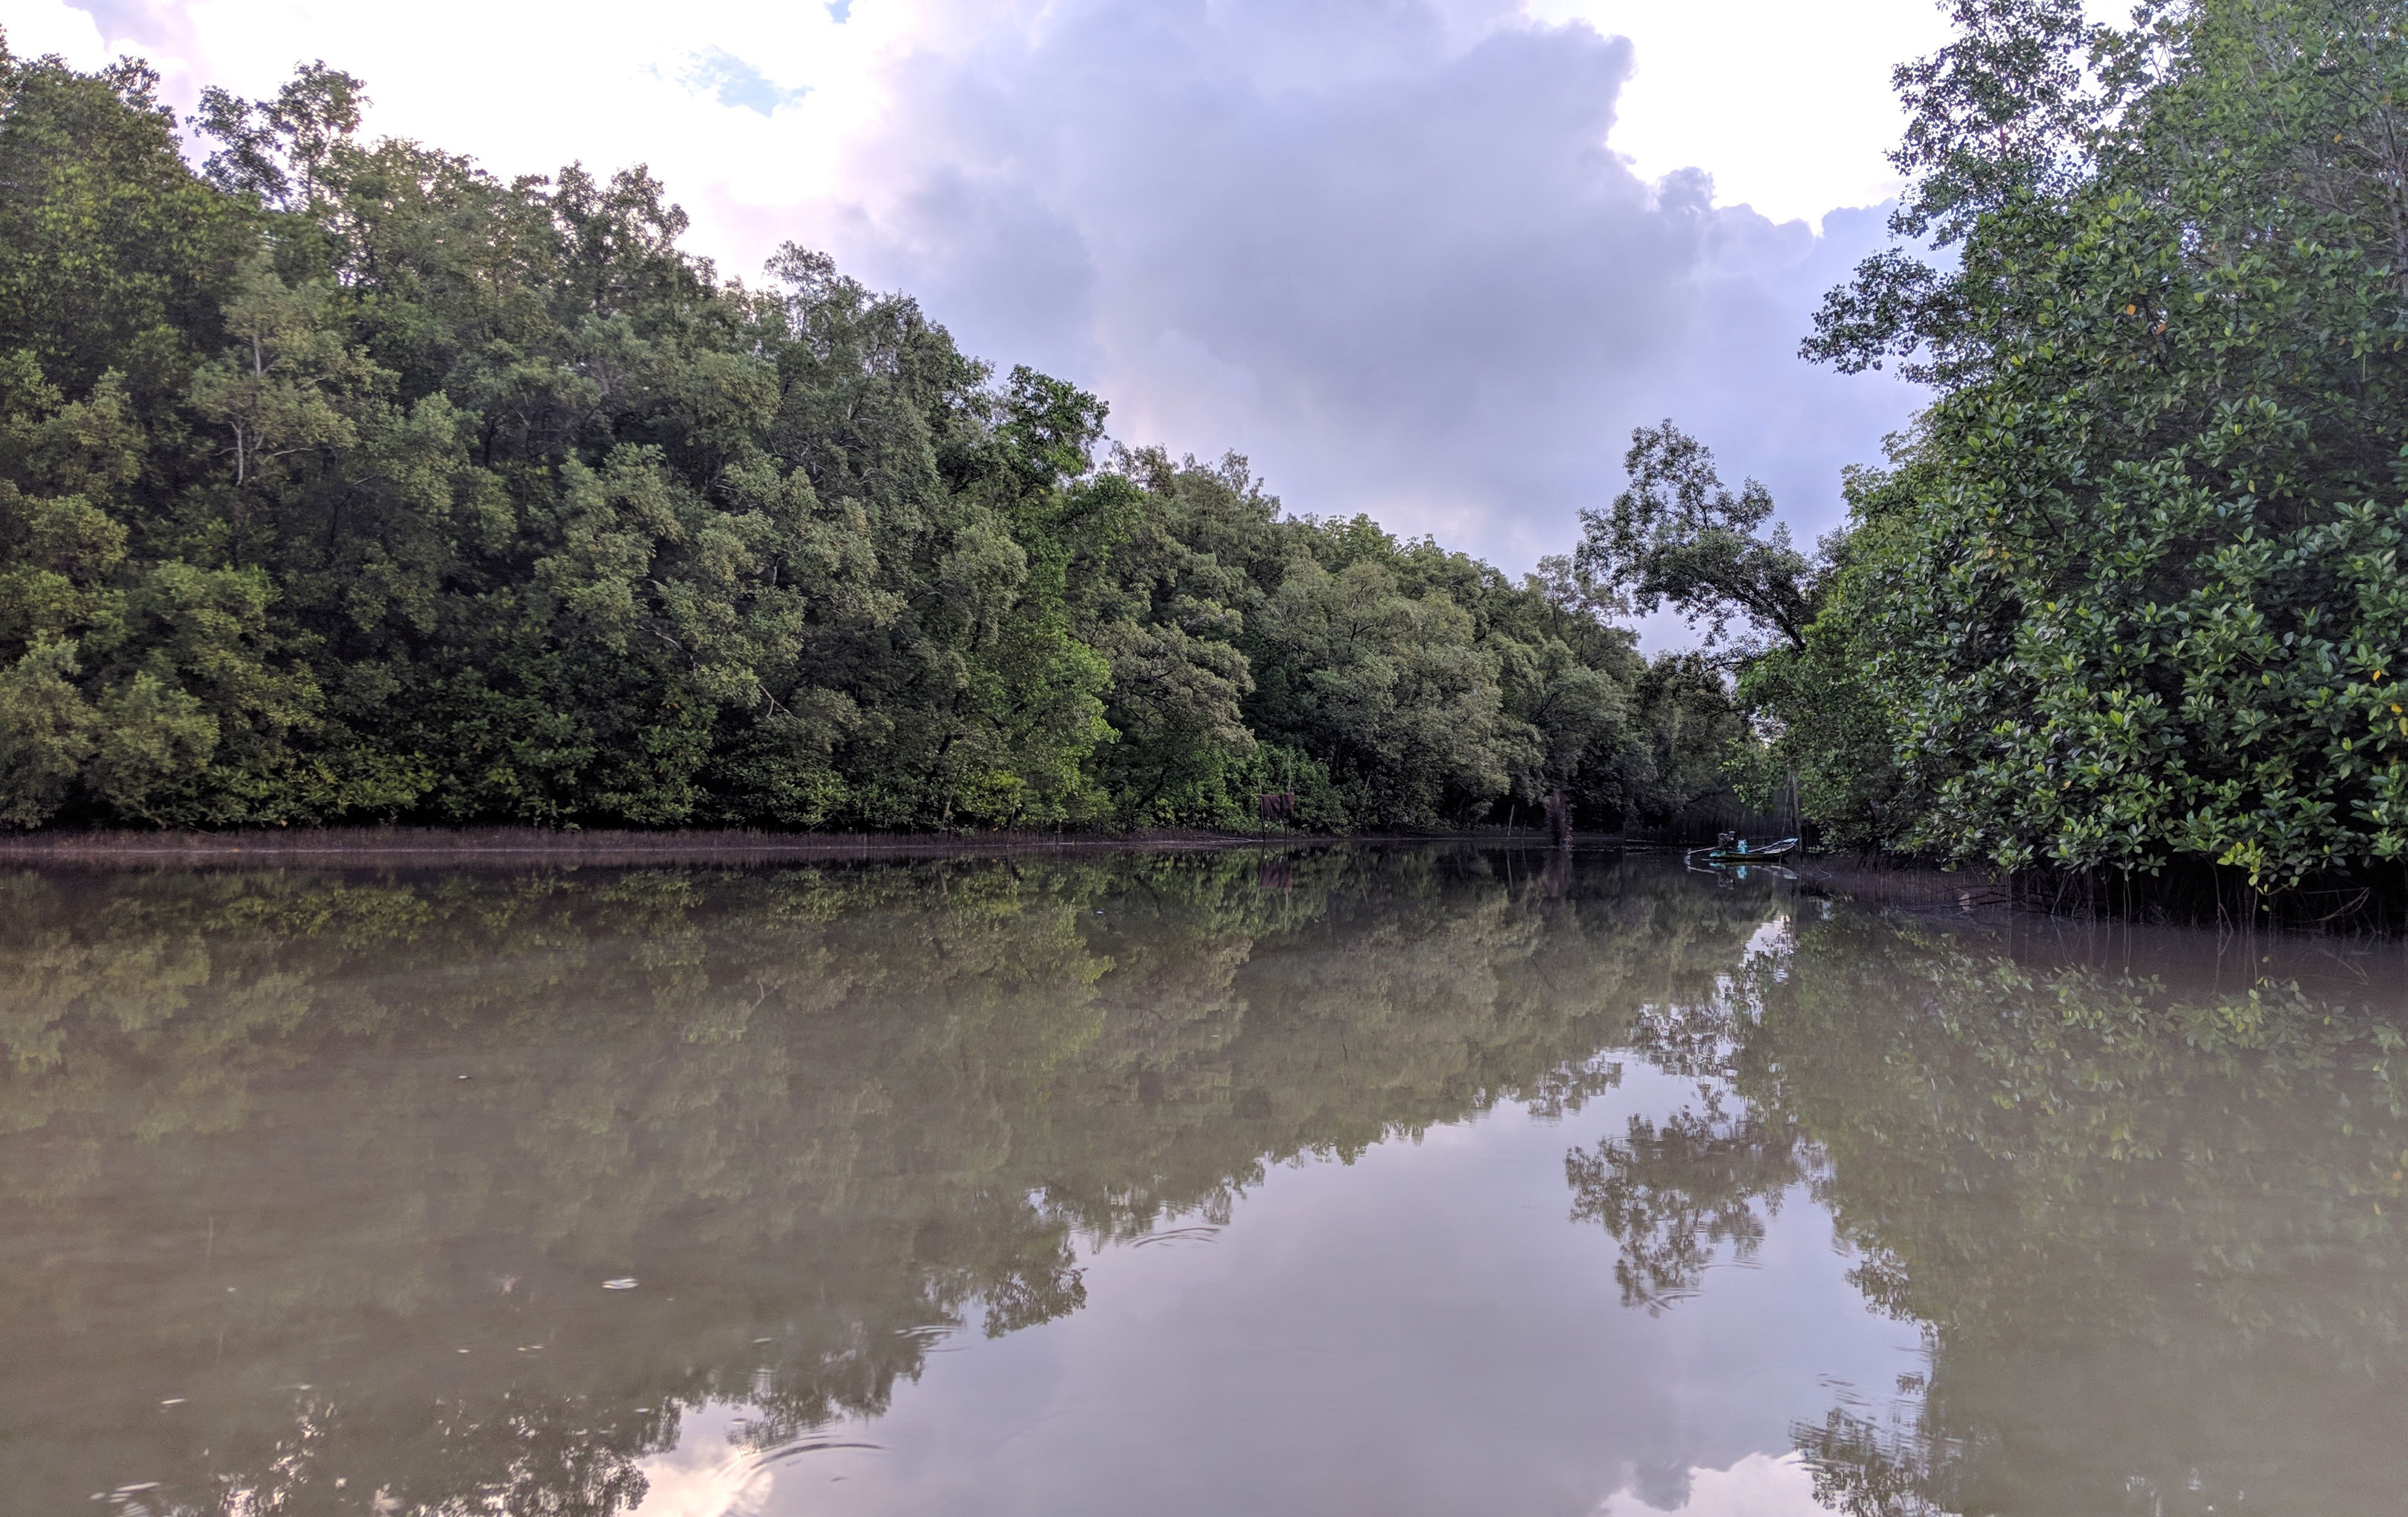 Trees and water in a mangrove.